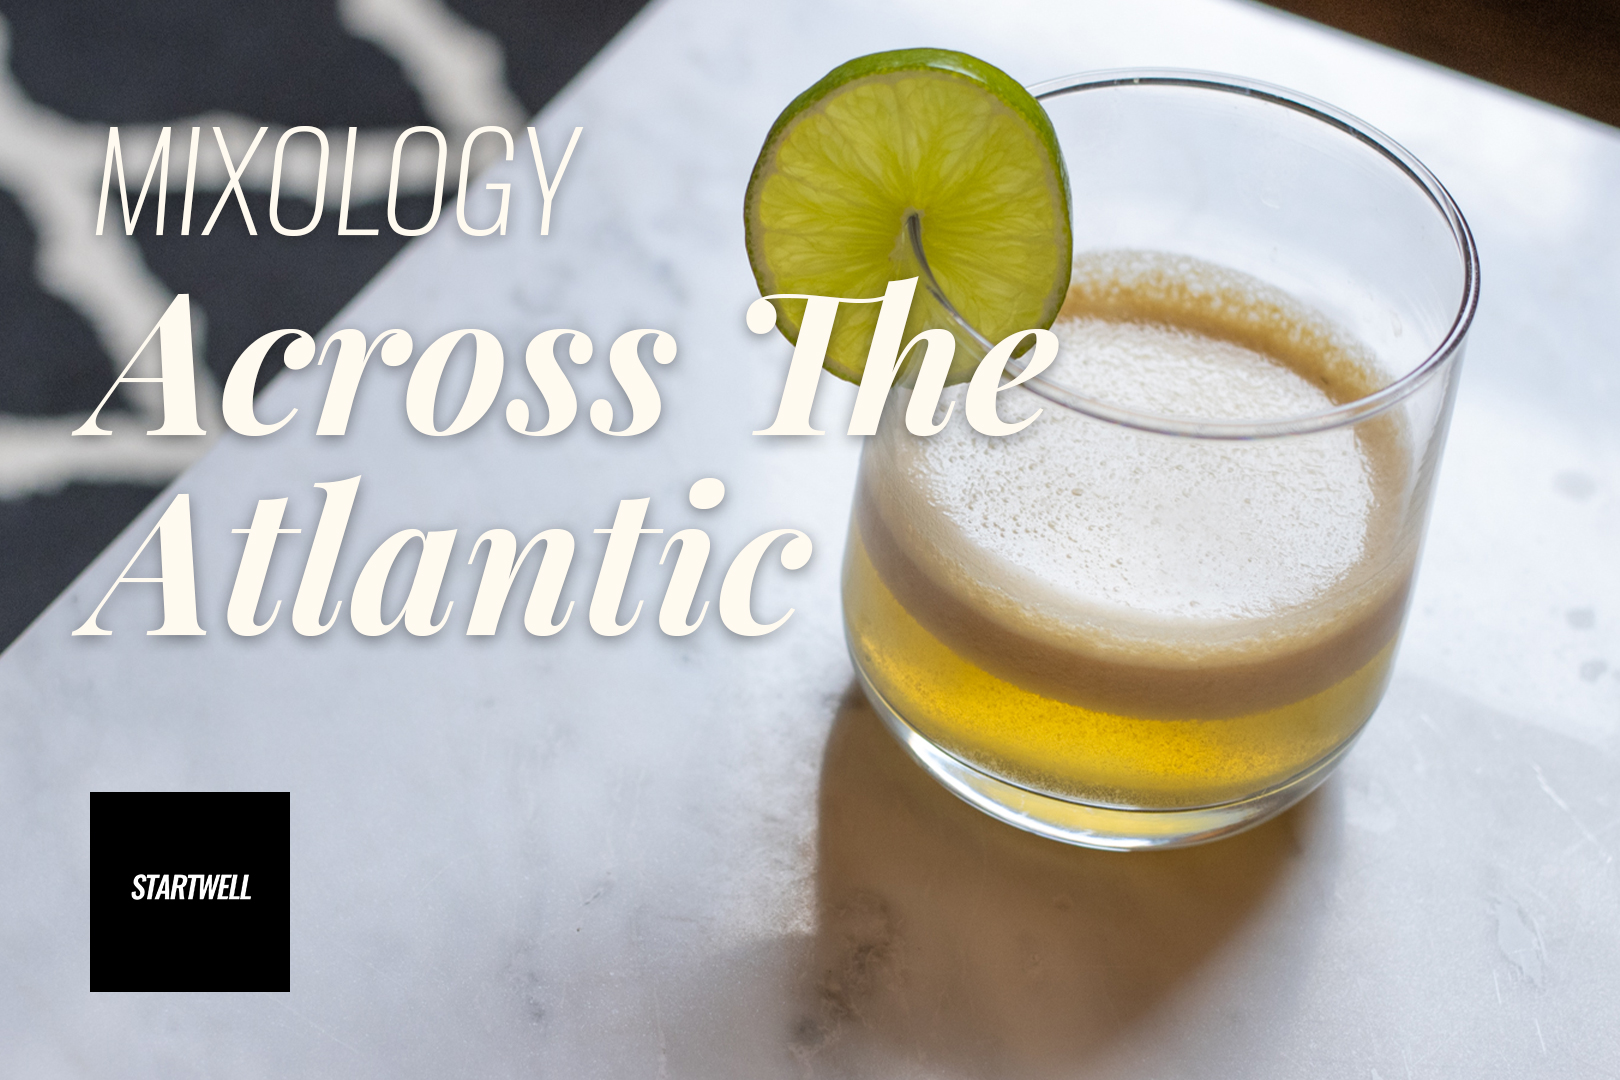 StartWell Mixology - Across the Atlantic